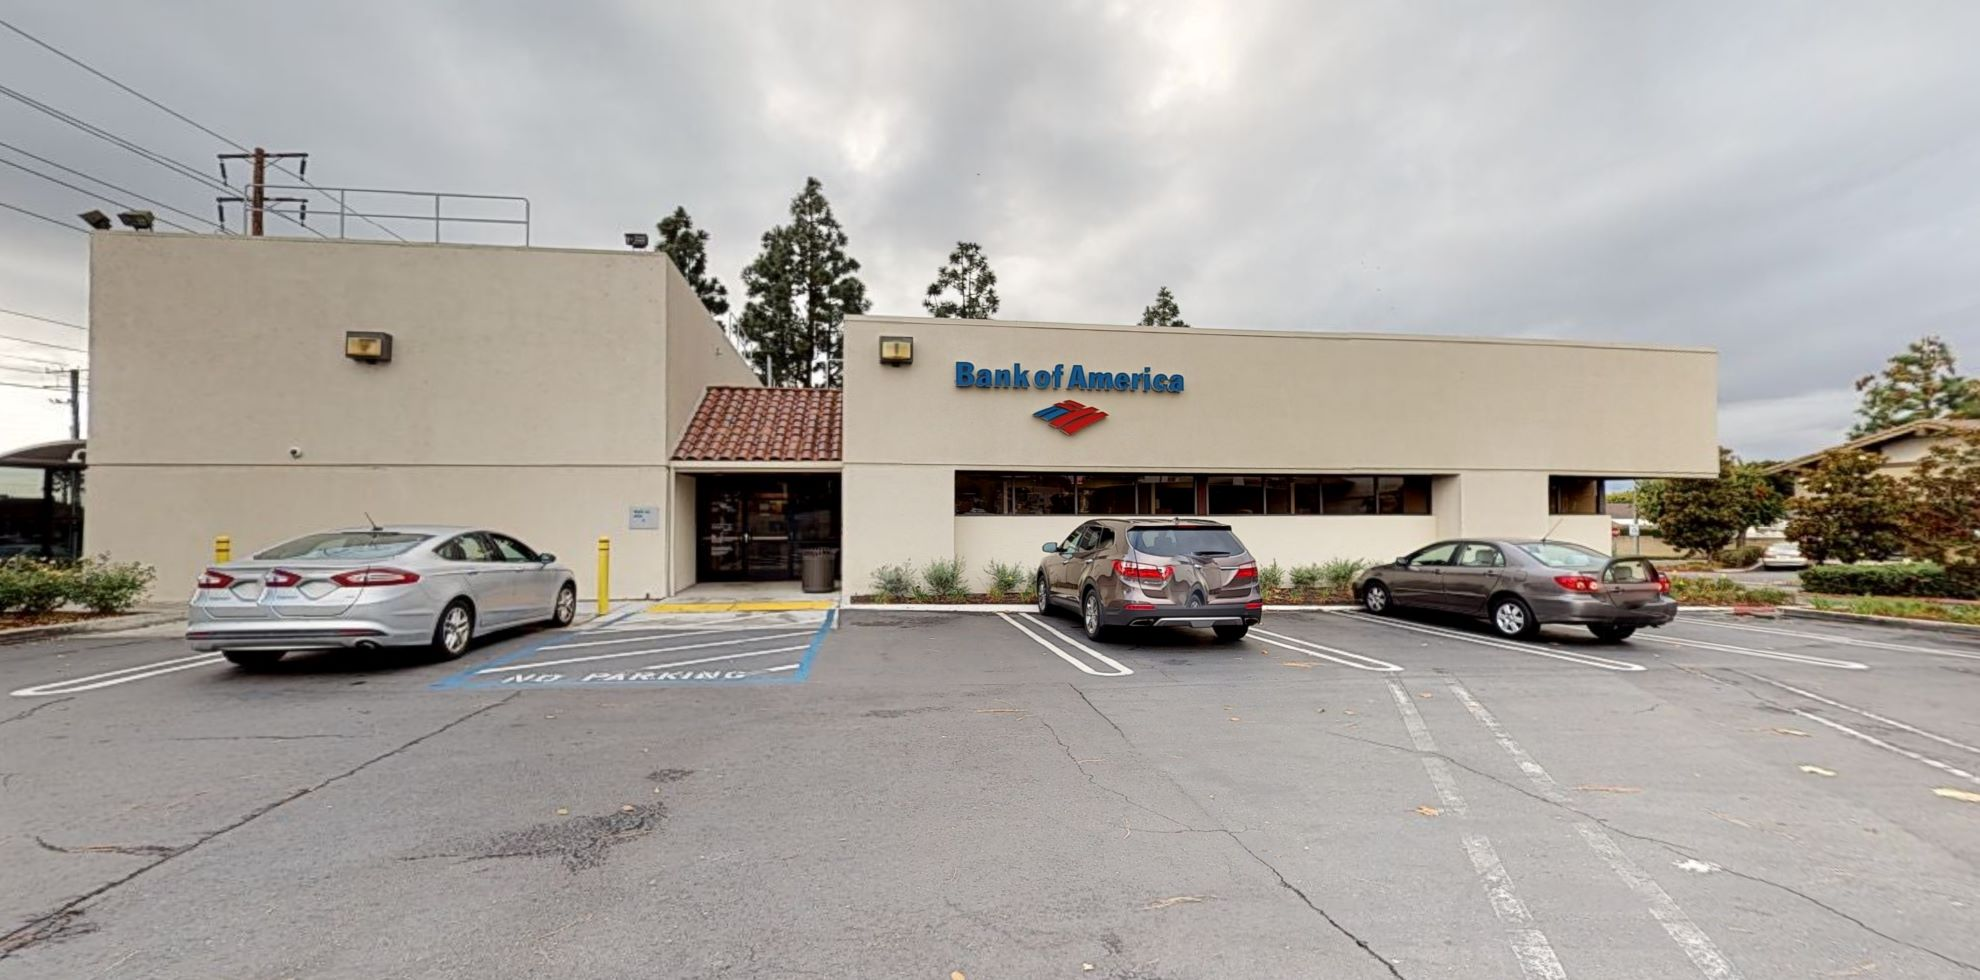 Bank of America financial center with walk-up ATM   22491 El Toro Rd, Lake Forest, CA 92630